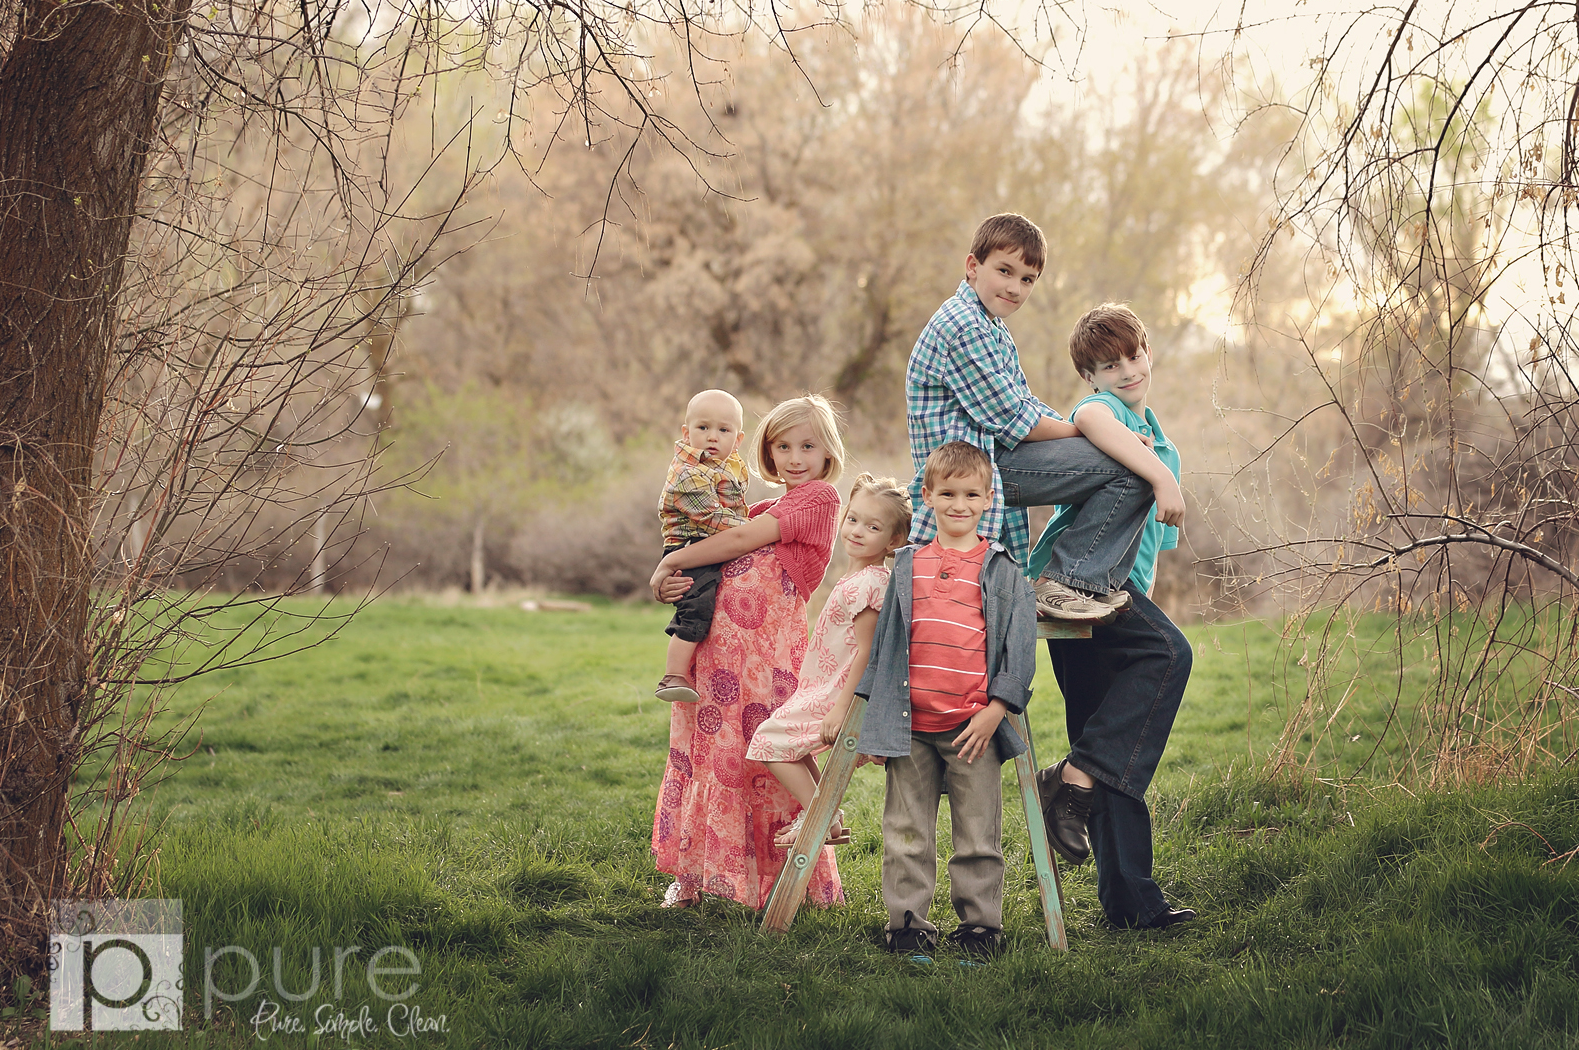 Tips for Photographing Families with Autism